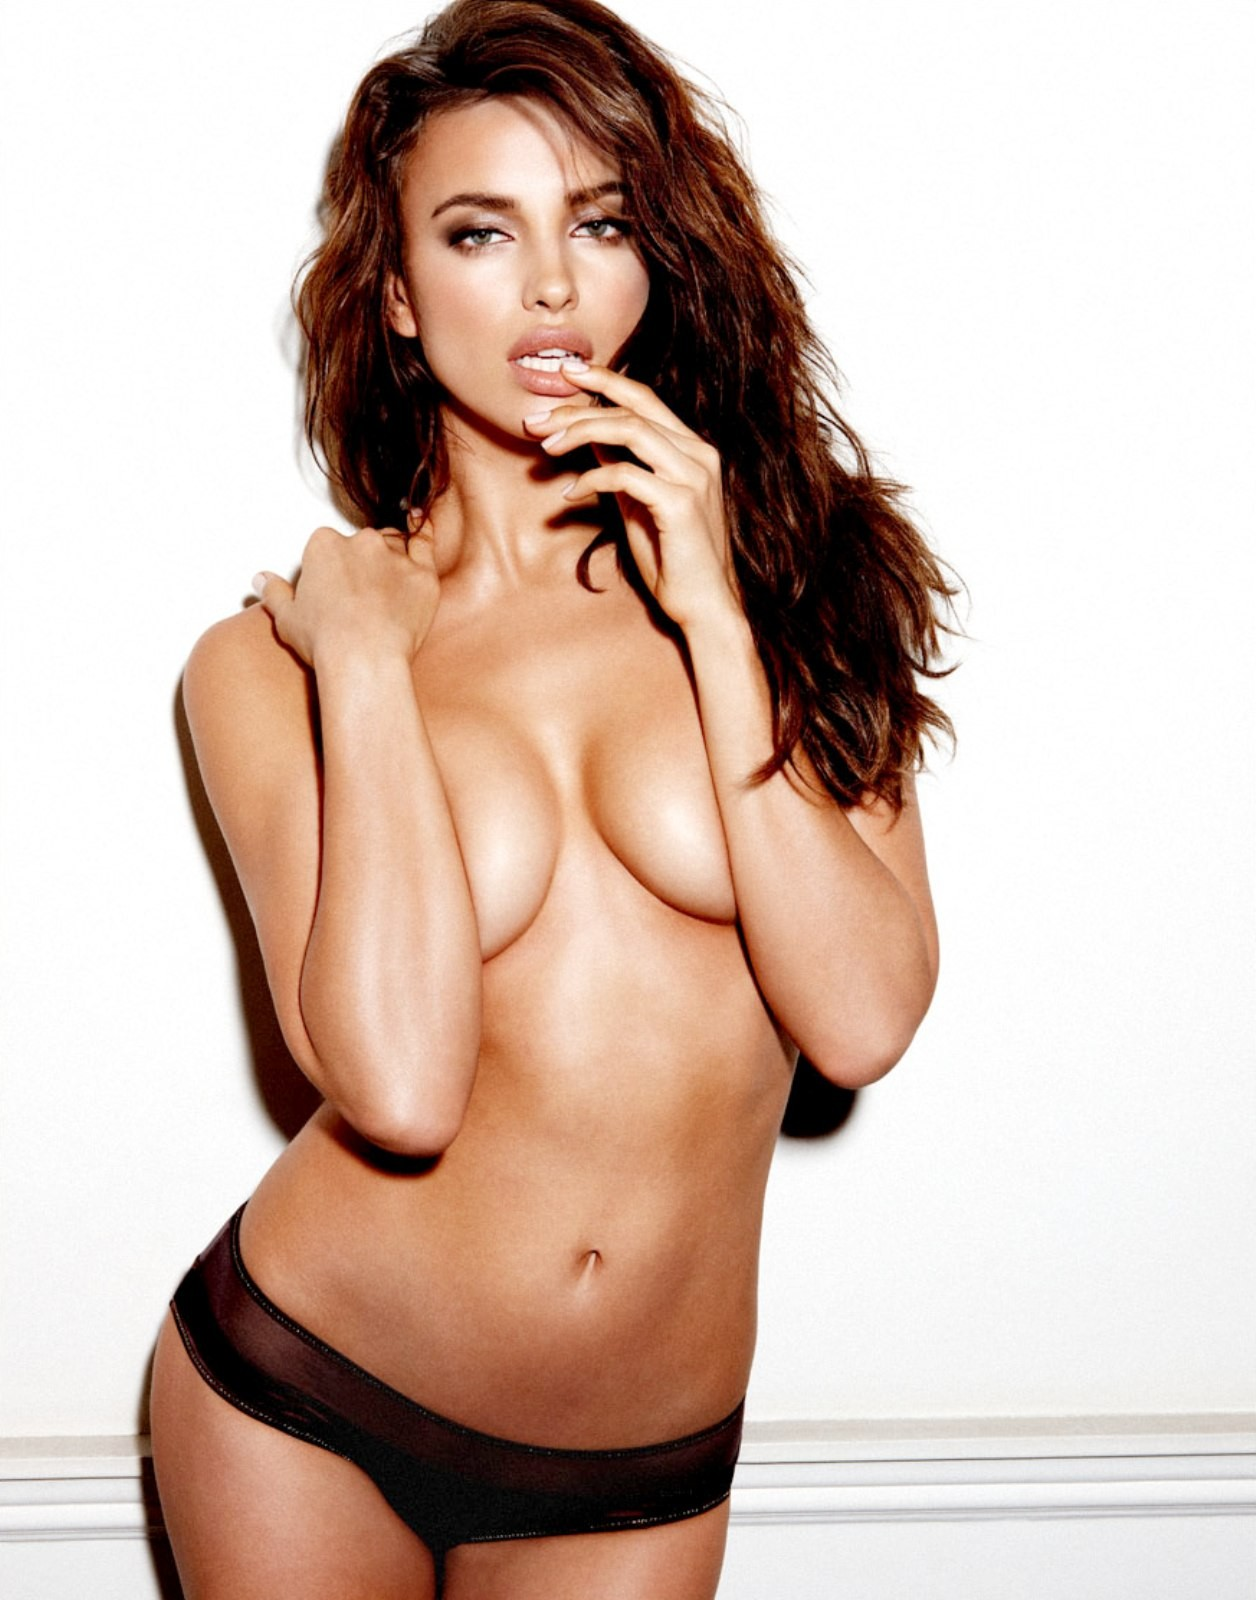 Irina Shayk Irina Shayk Photo 28587837 Fanpop